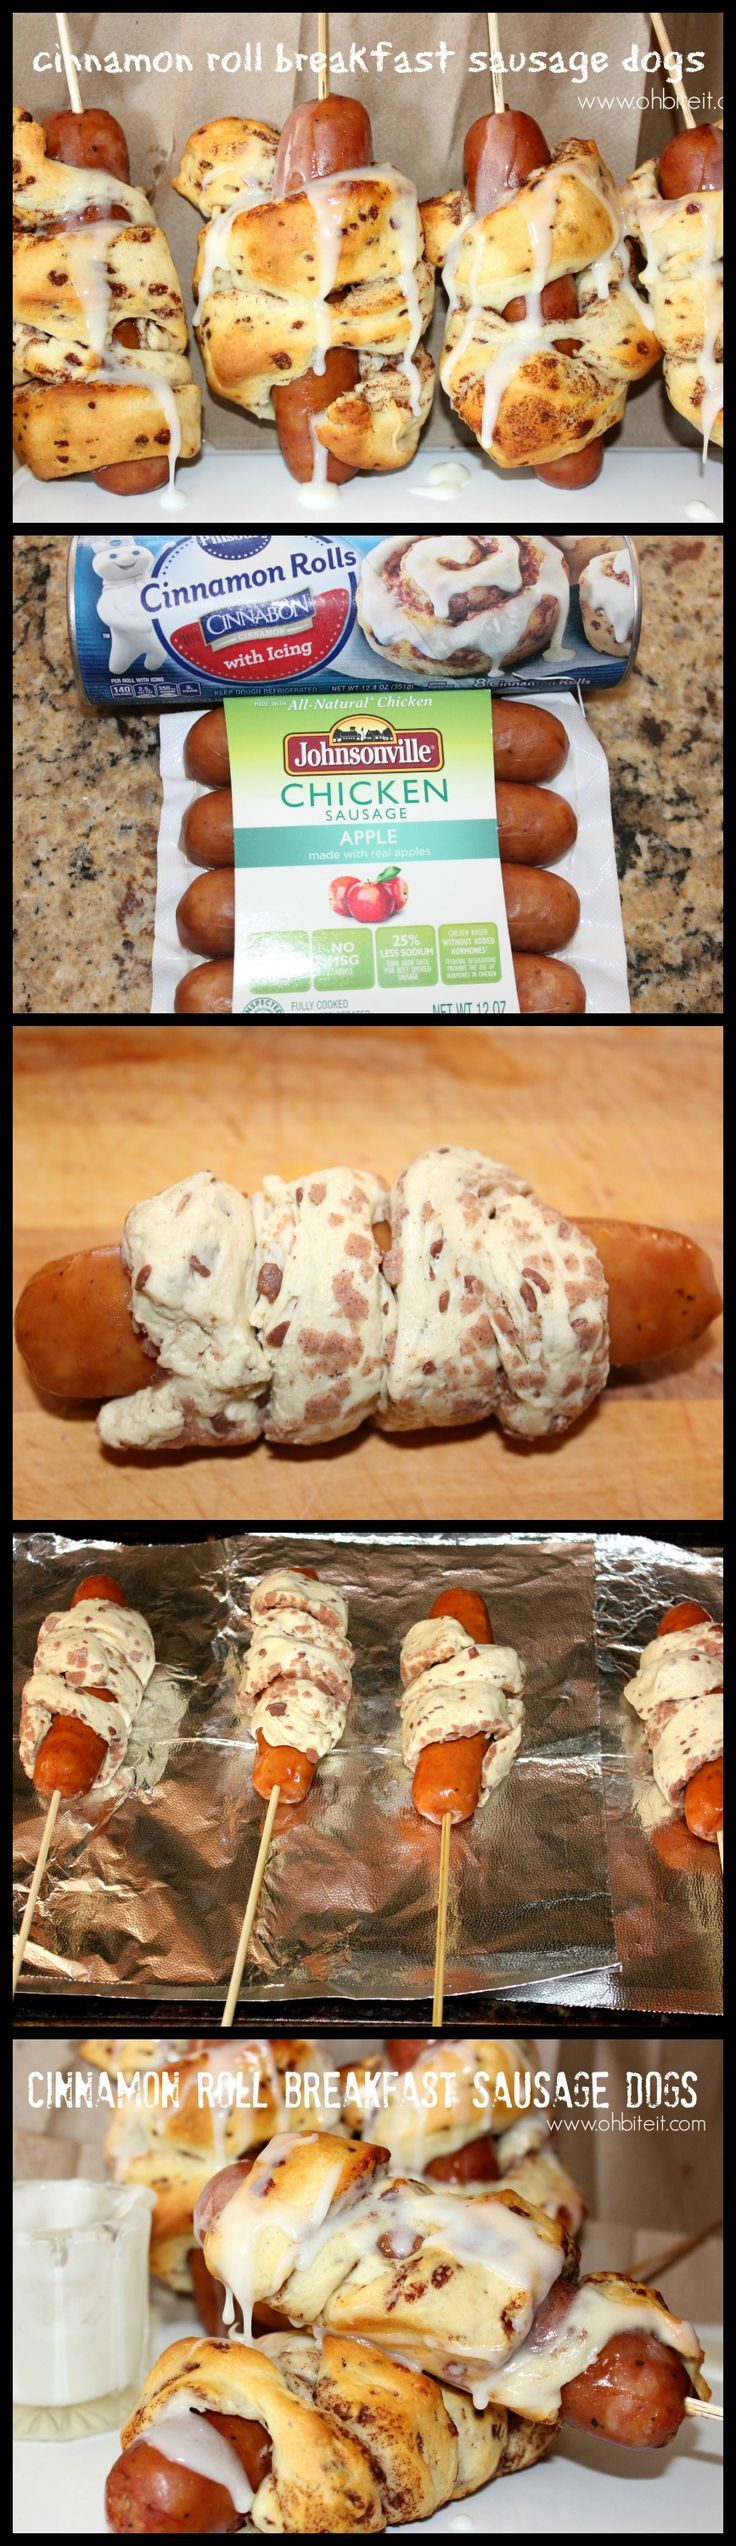 ~Cinnamon Roll Breakfast Sausage Dogs!